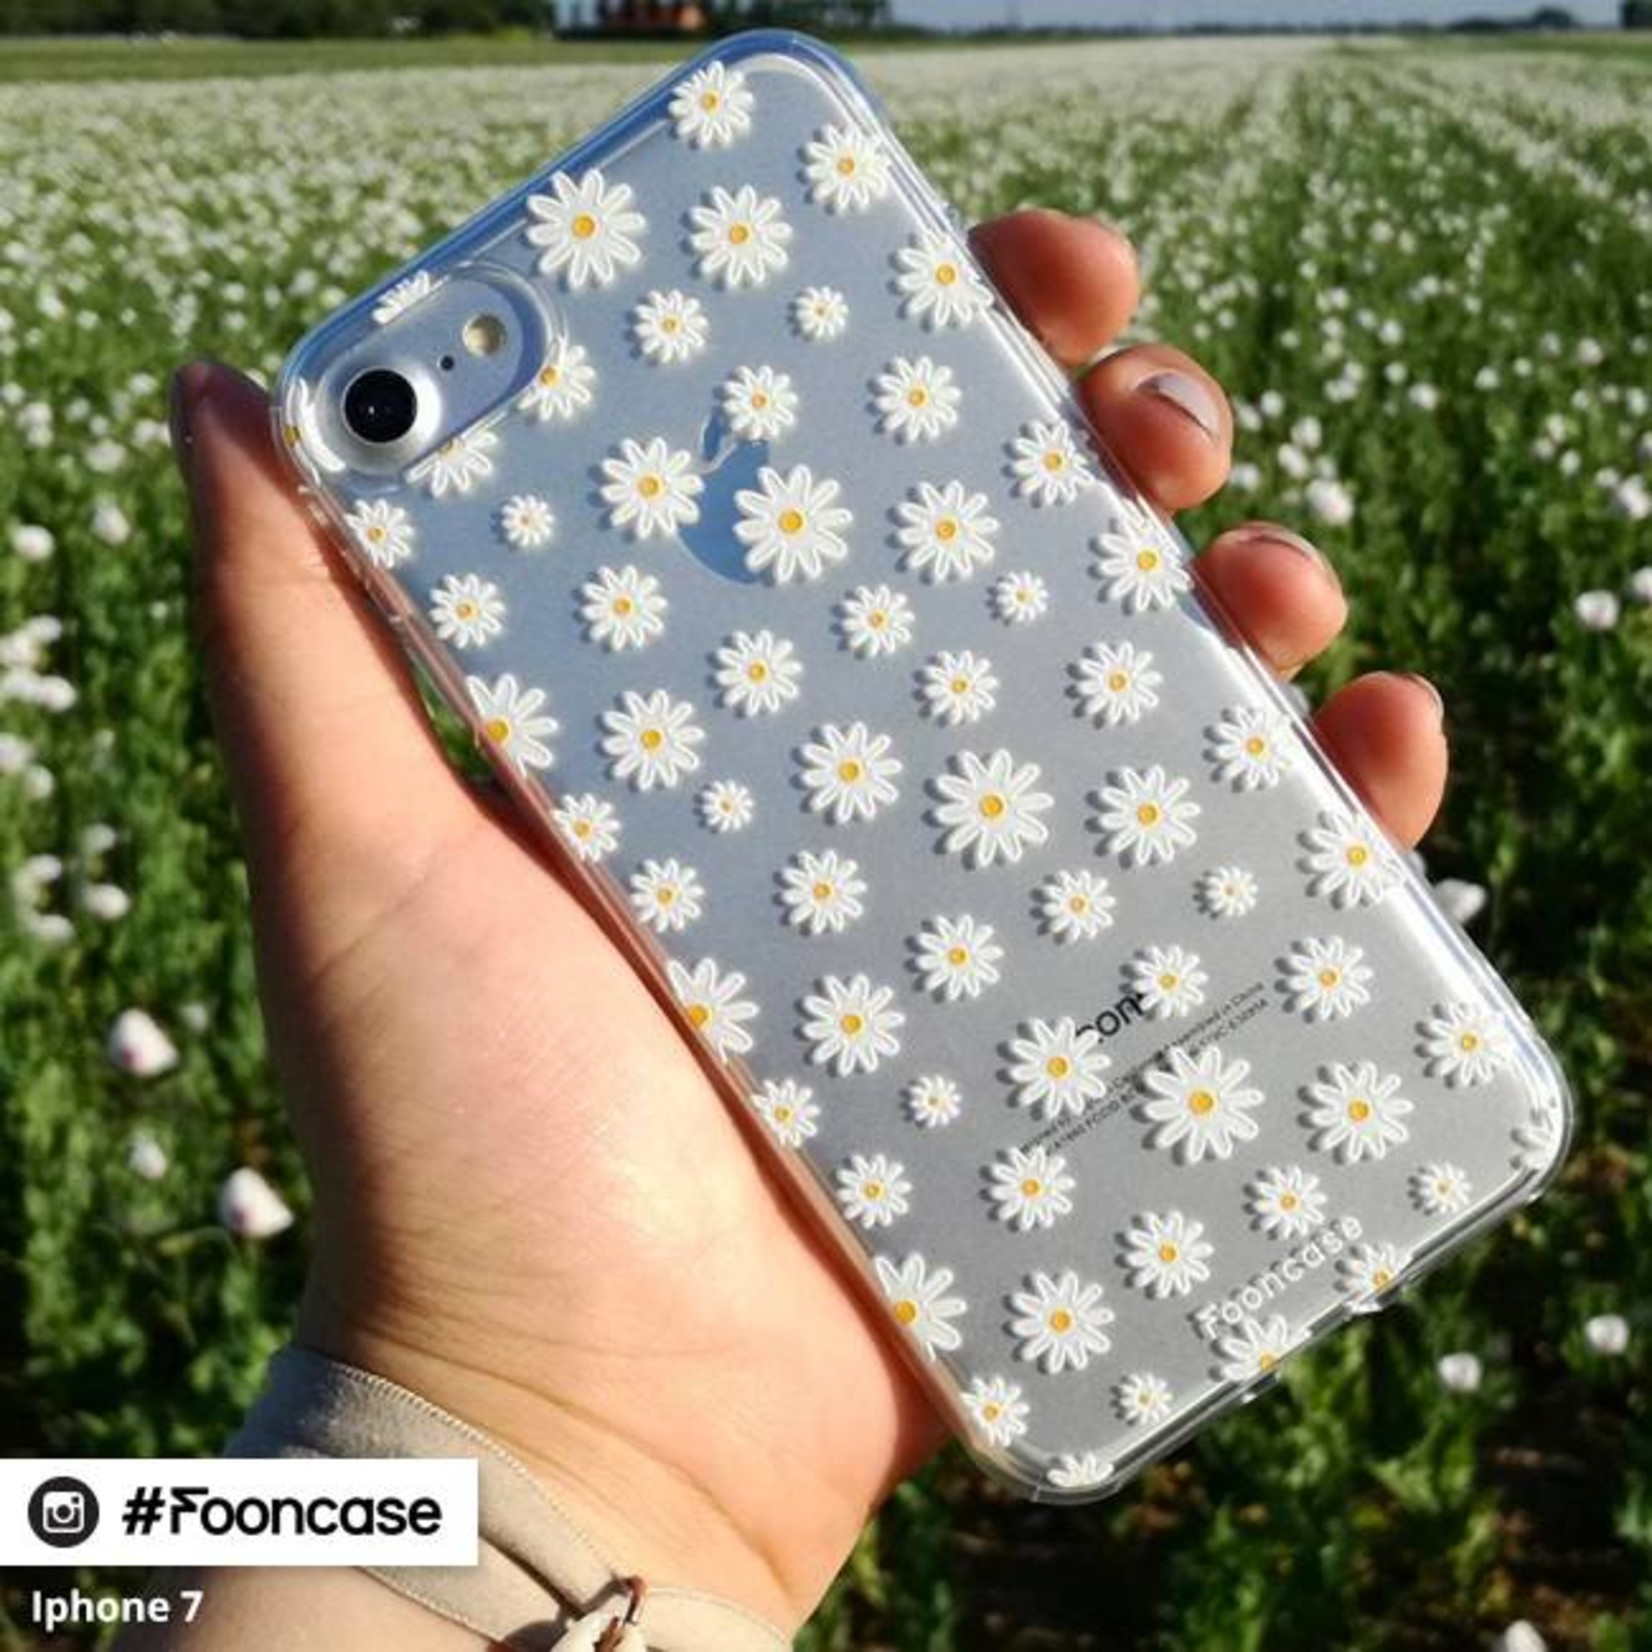 FOONCASE Samsung Galaxy S8 Plus hoesje TPU Soft Case - Back Cover - Madeliefjes